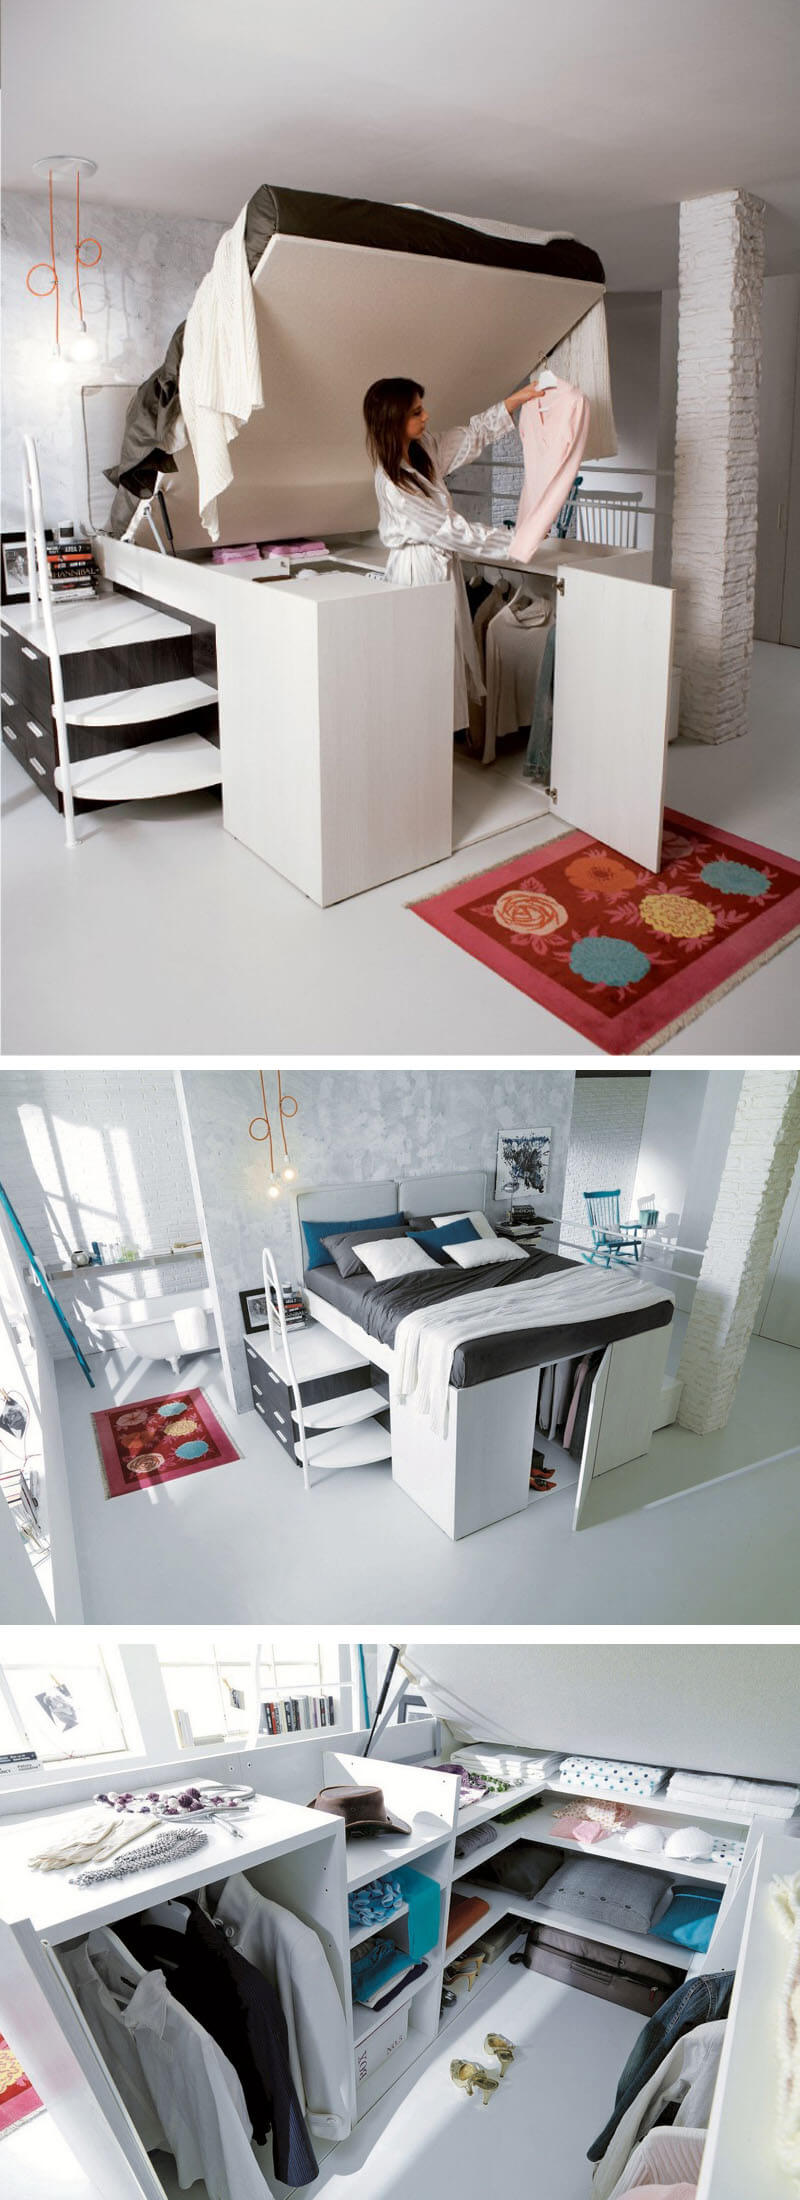 space saving small bedroom 9